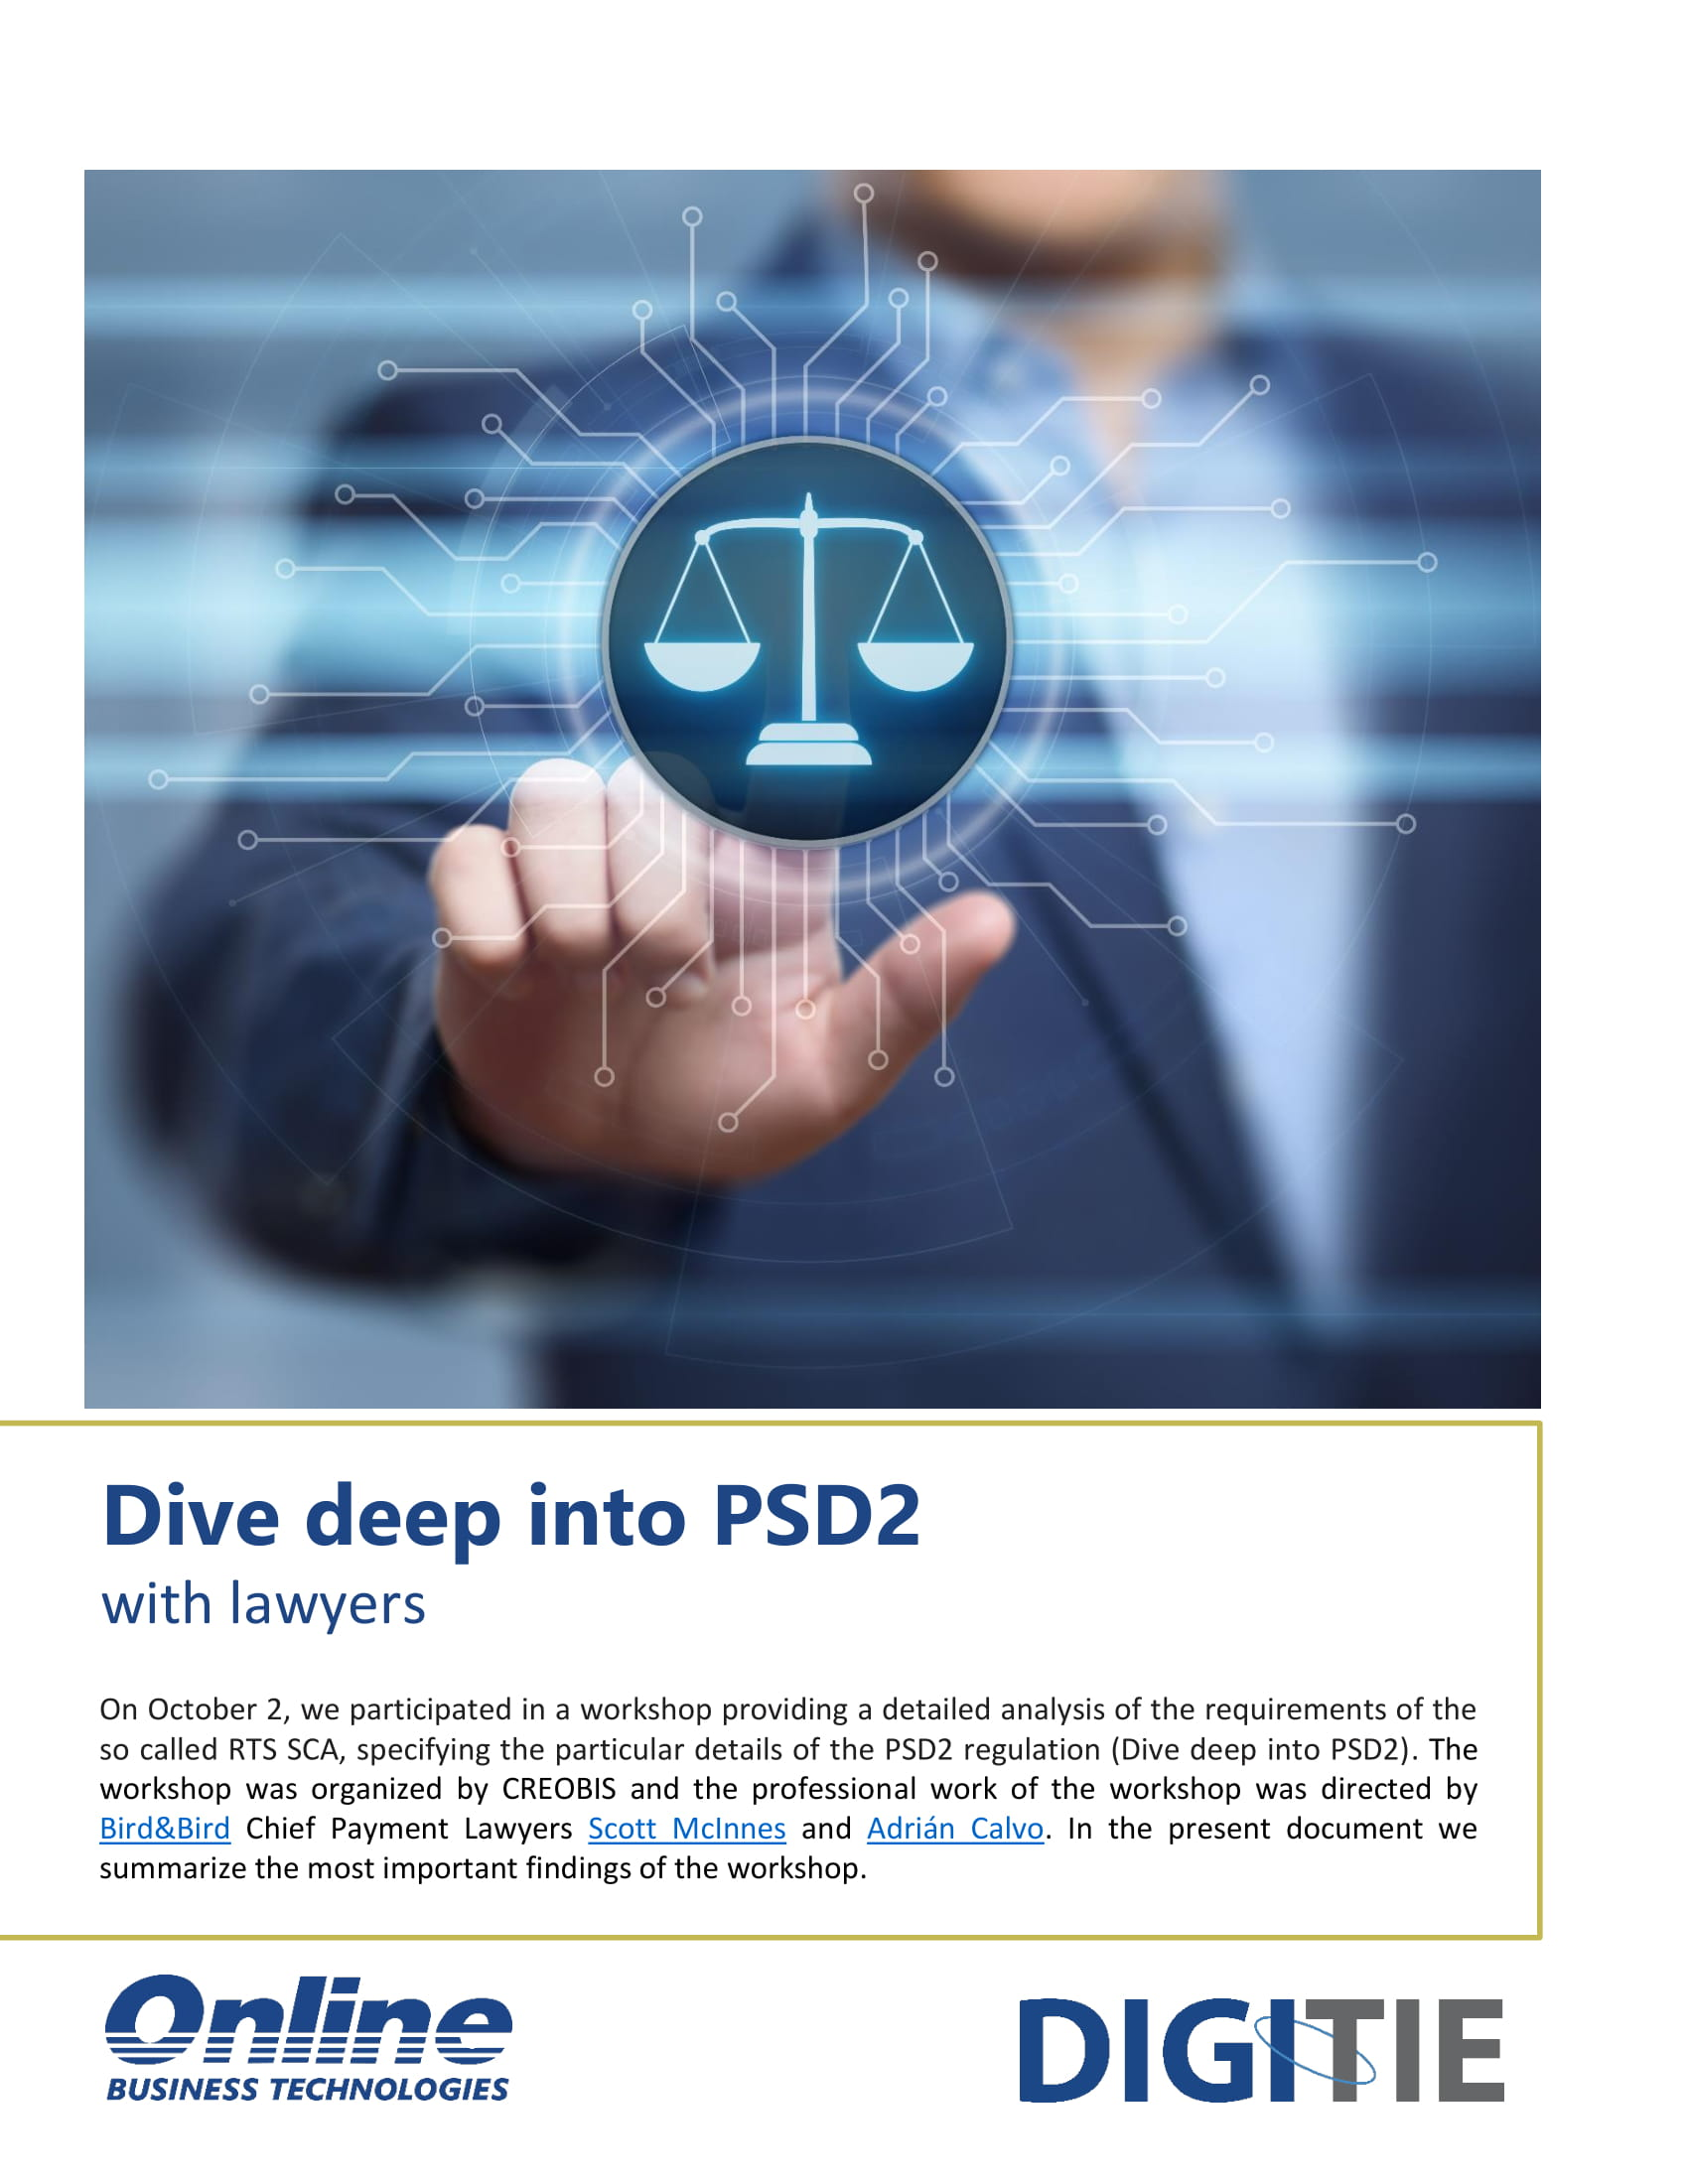 Dive deep into PSD2 with lawyers